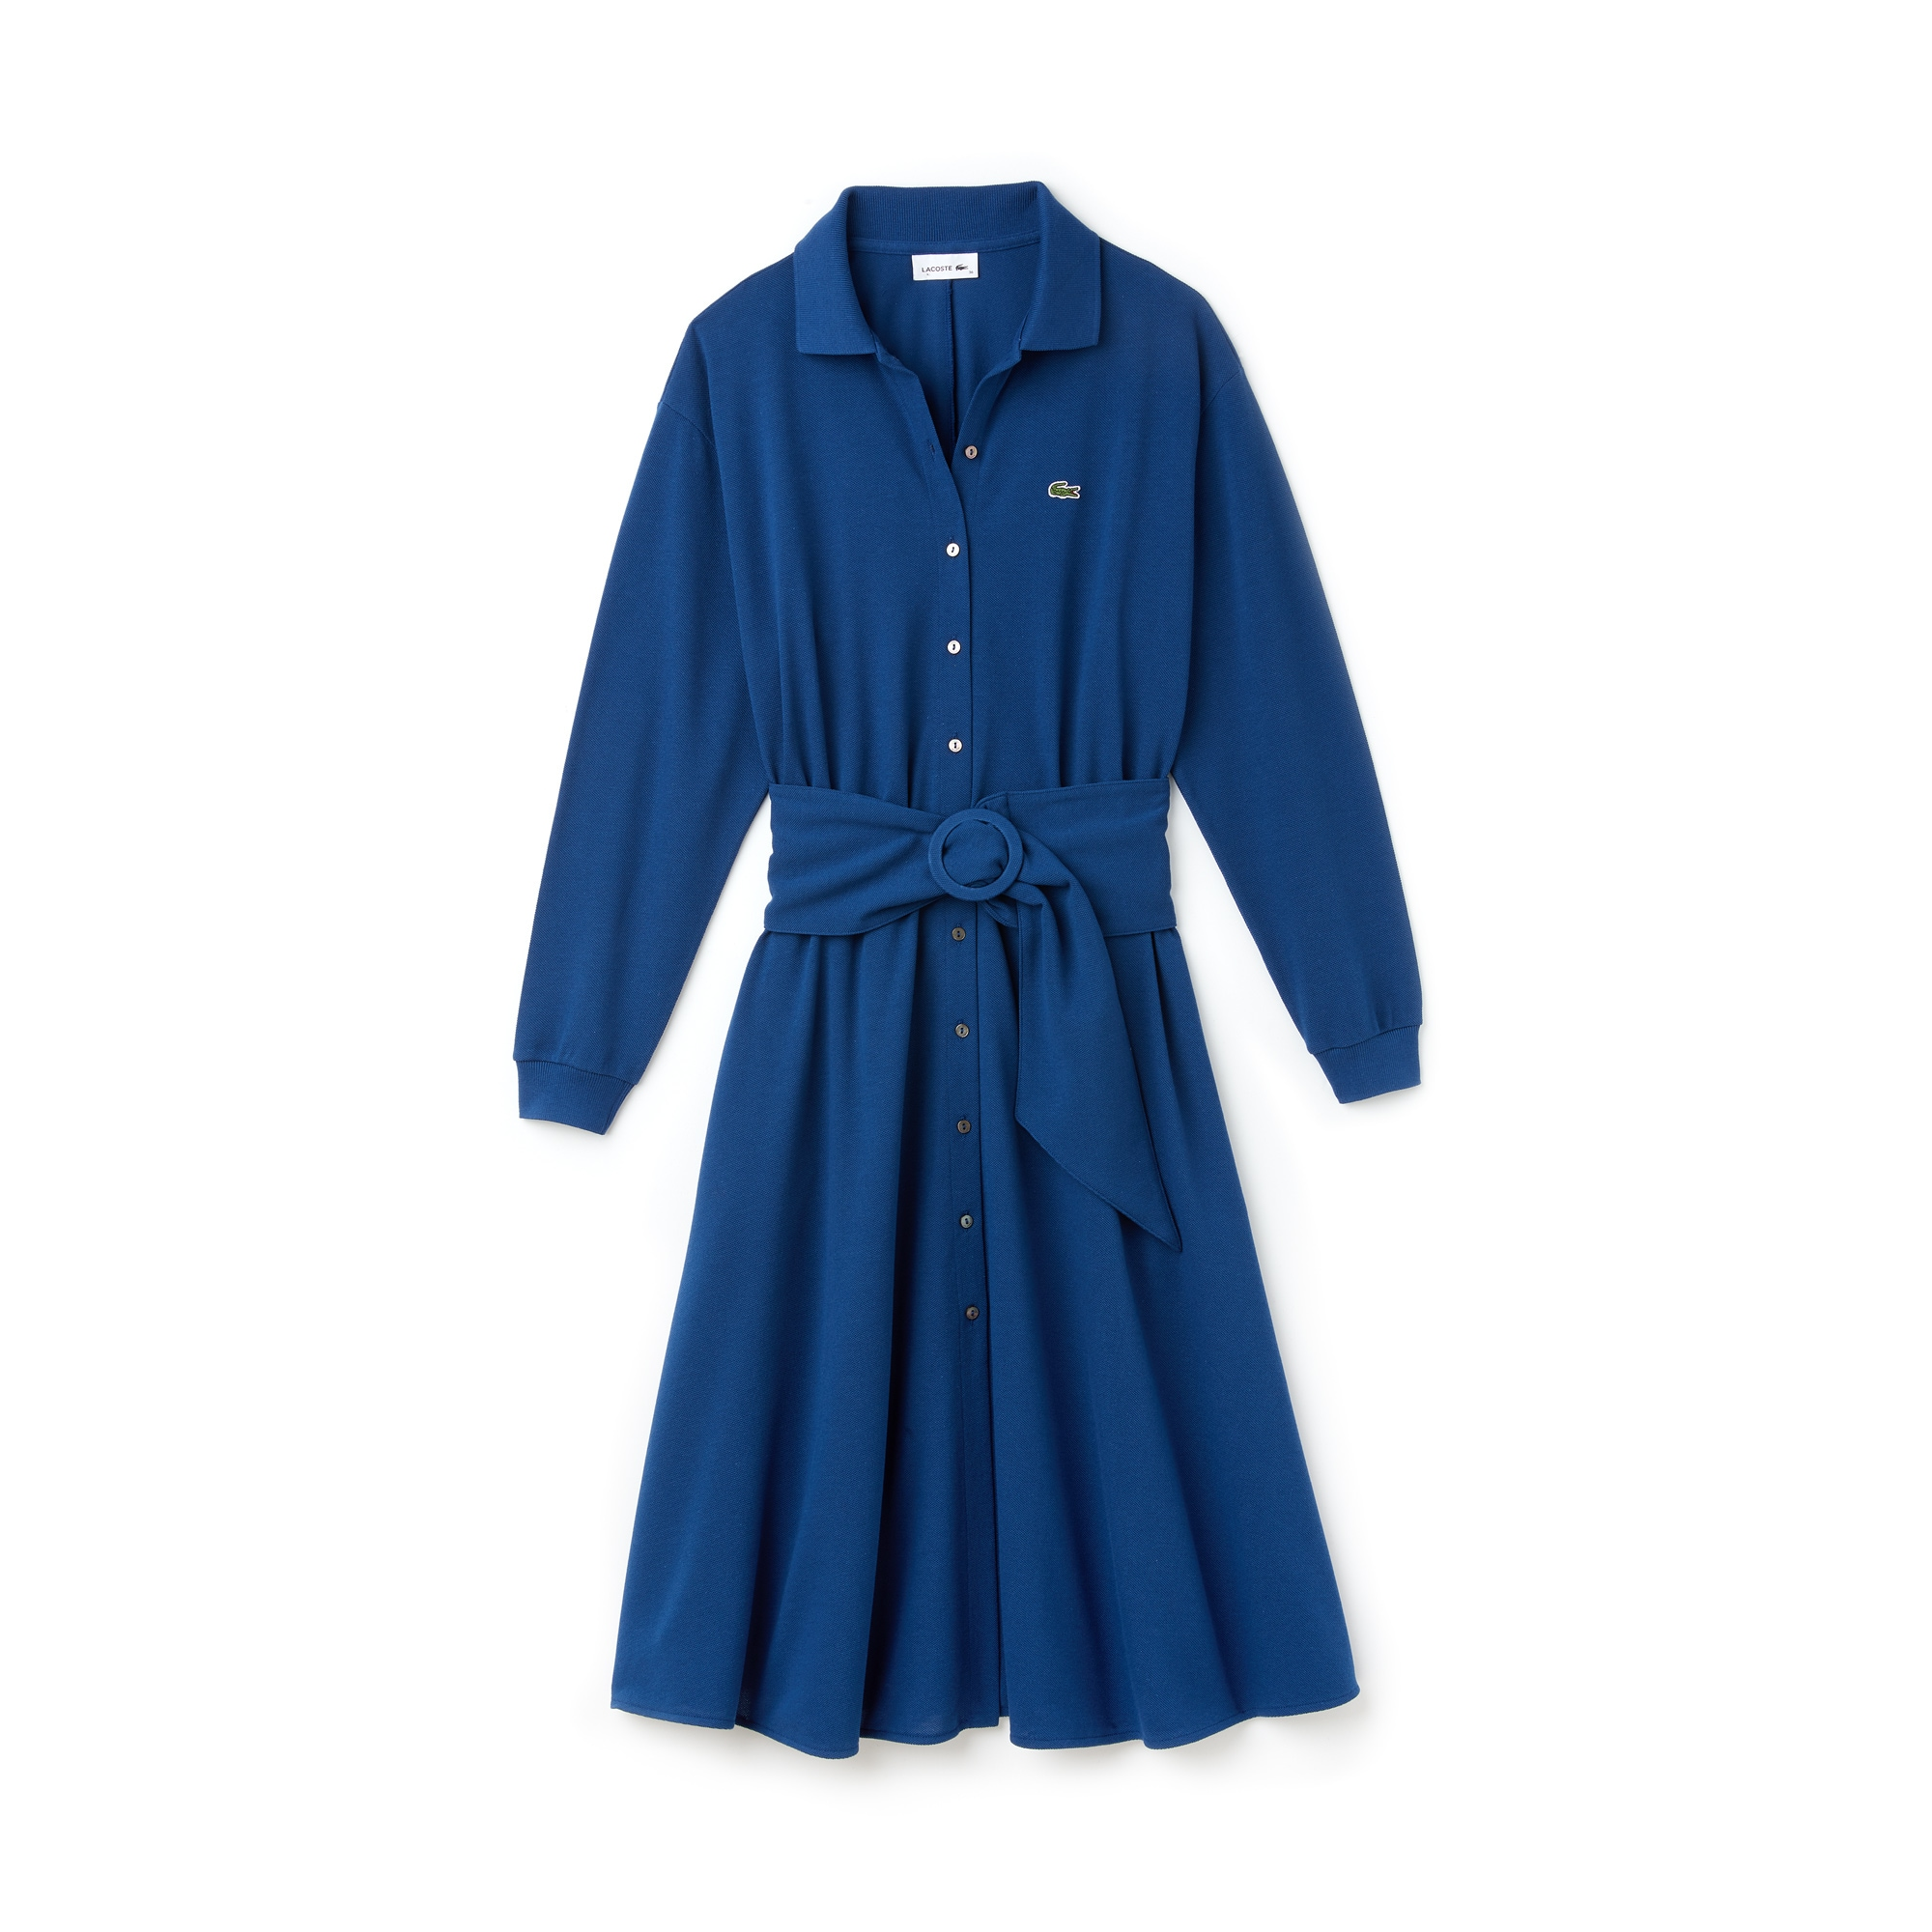 라코스테 벨트 피케 원피스 블루 색상 Lacoste Womens Belted Cotton Petit Pique Shirt Dress,inkwell blue